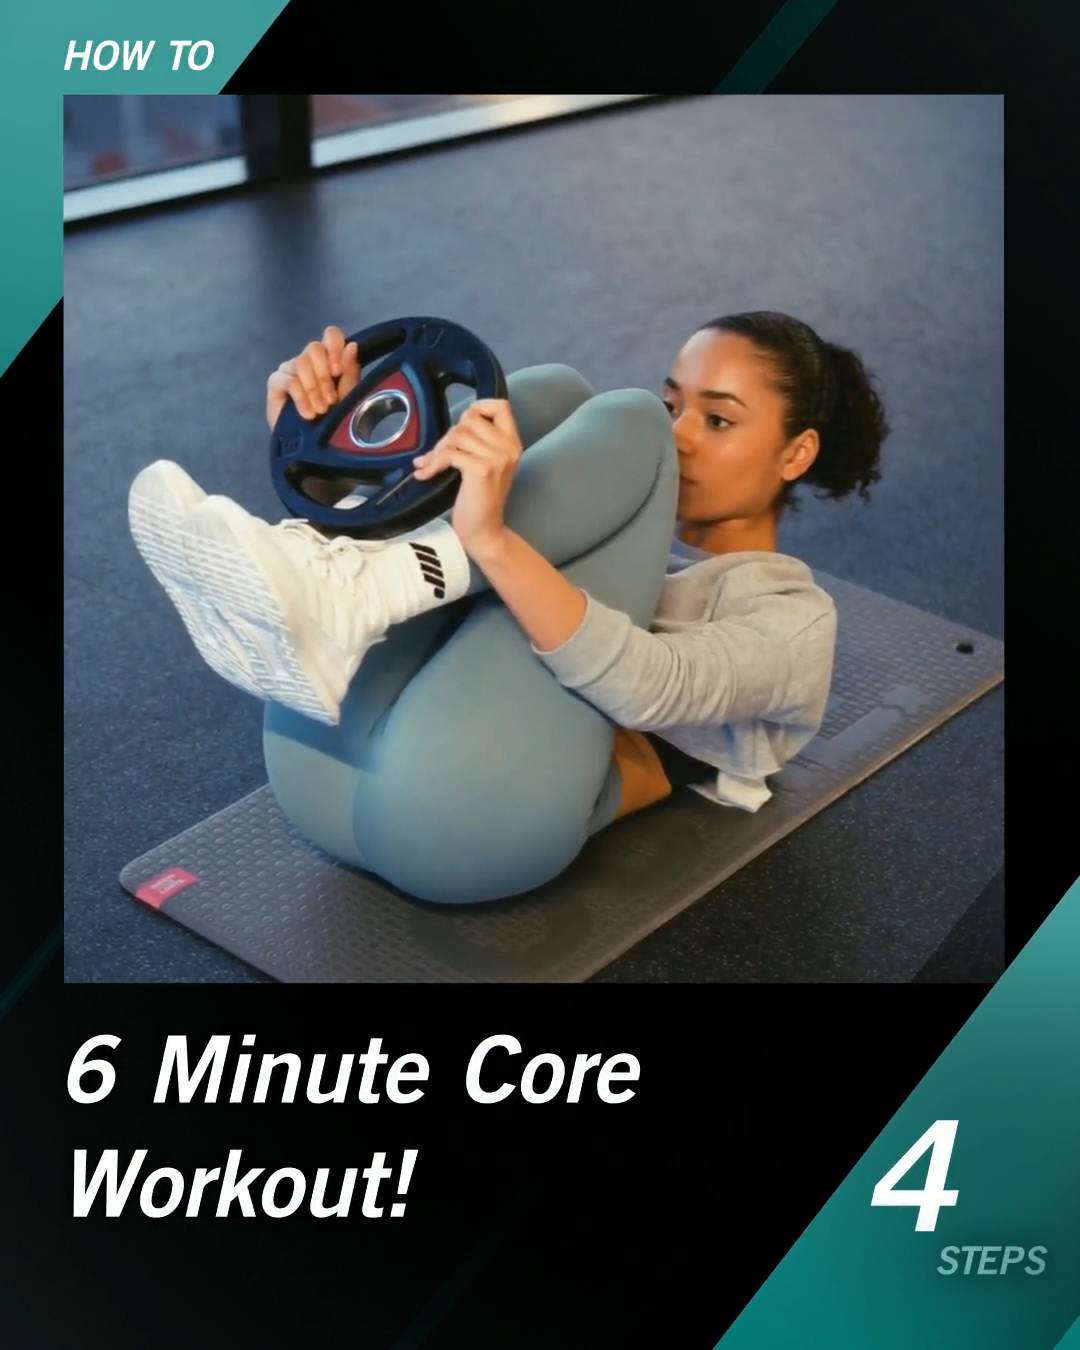 6 Minute Core Workout